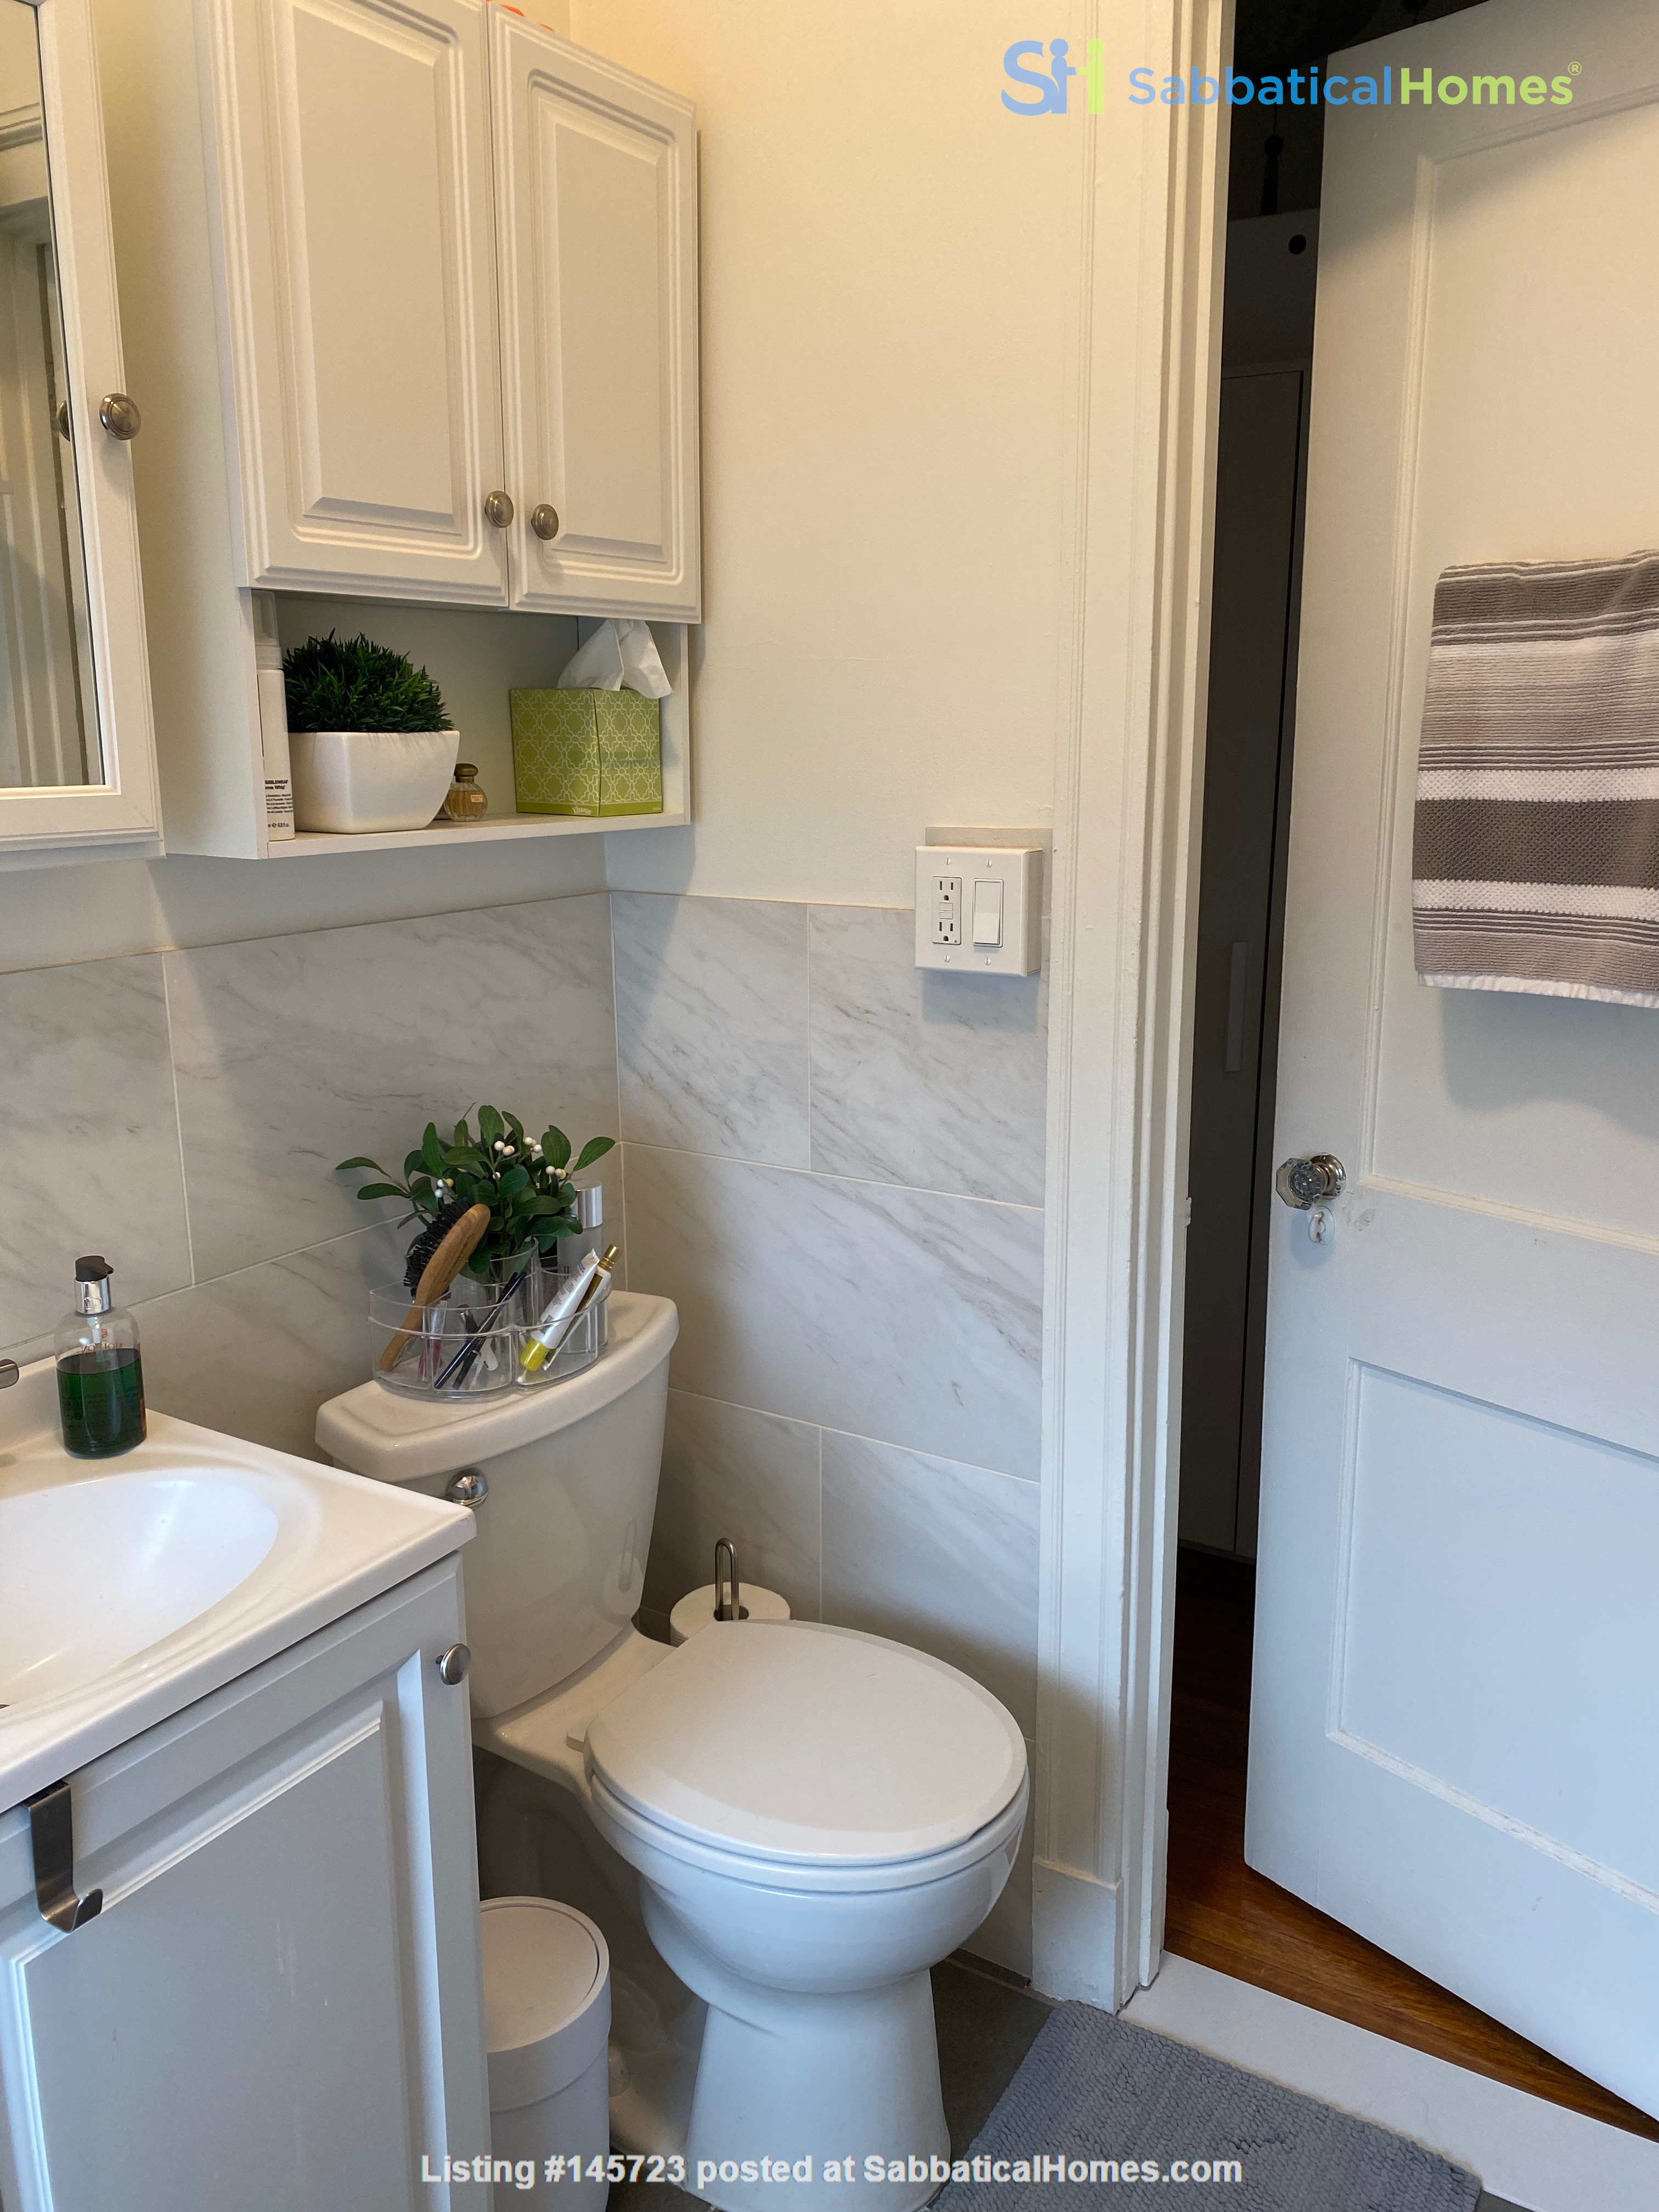 For Rent: A wonderful apartment in the heart of Harvard Square! Home Rental in Cambridge, Massachusetts, United States 8